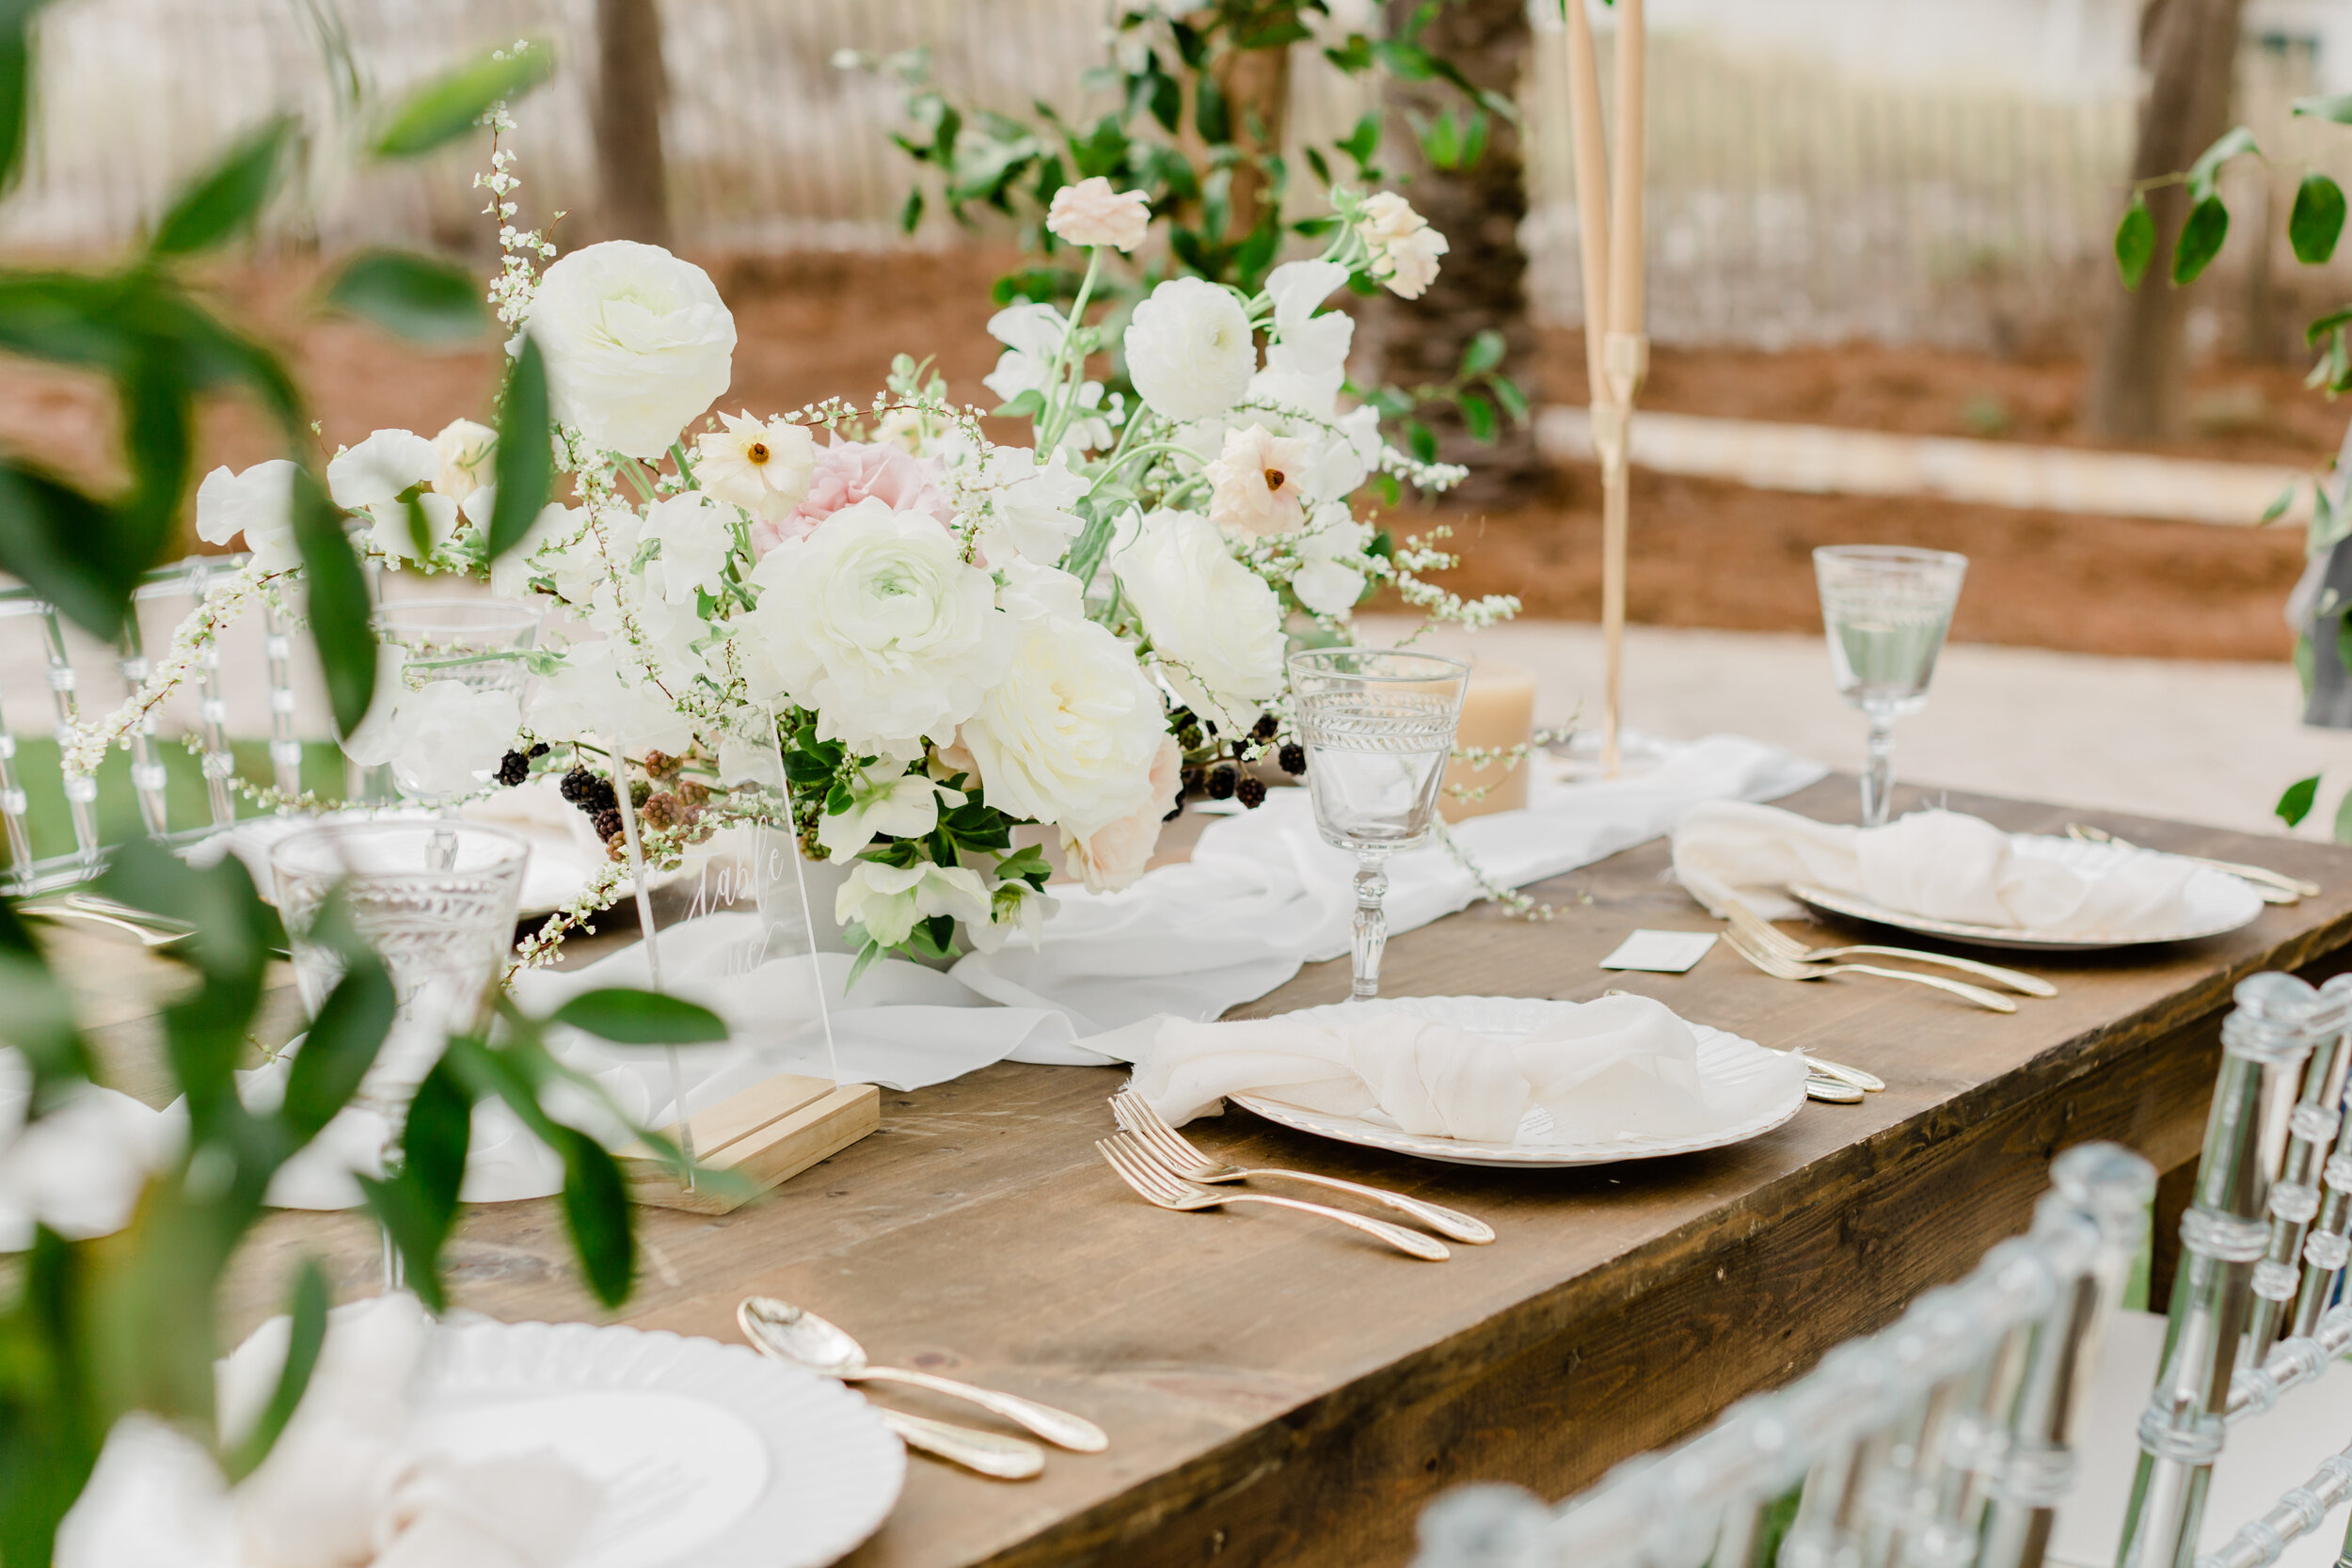 dreamy and simple outdoor wedding tablescape goals | Wedding Trends 2019